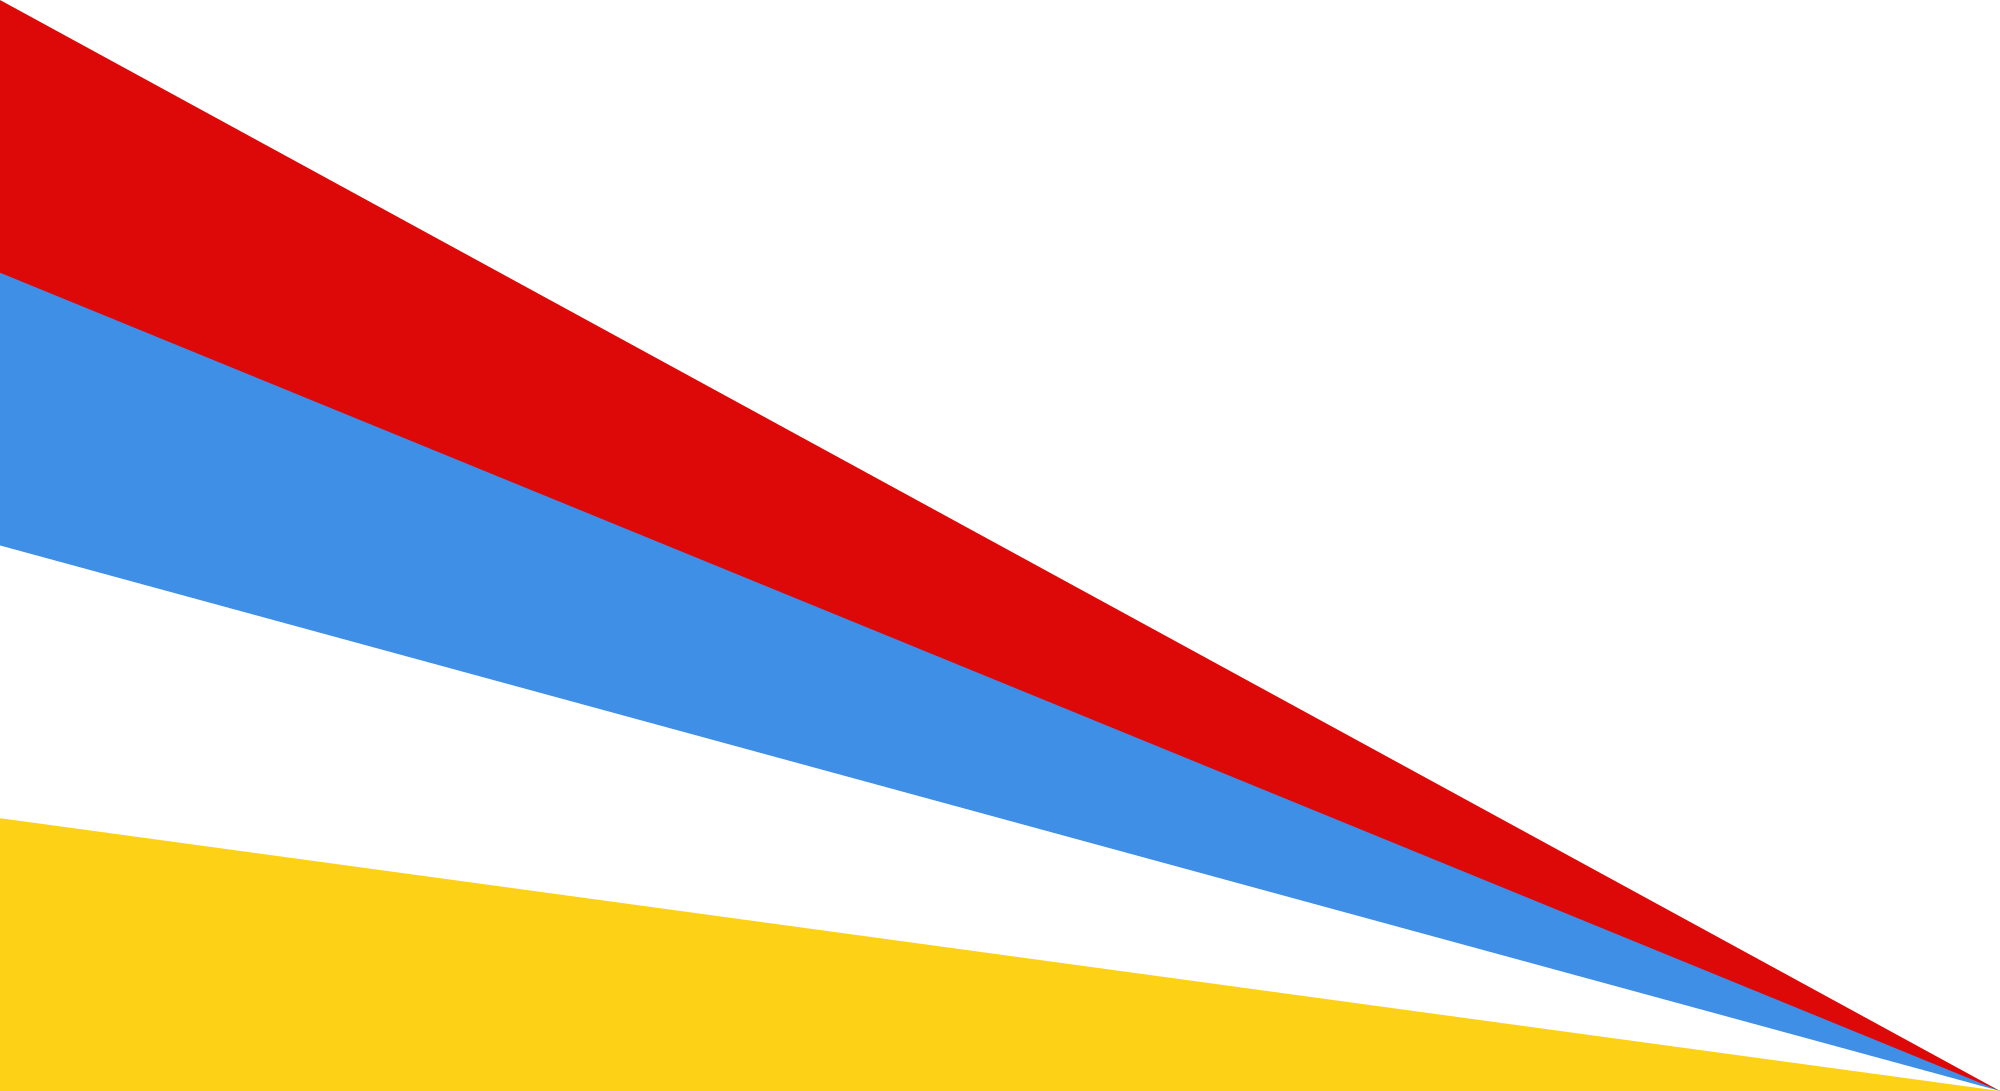 Stripes png. File afsharid imperial standard